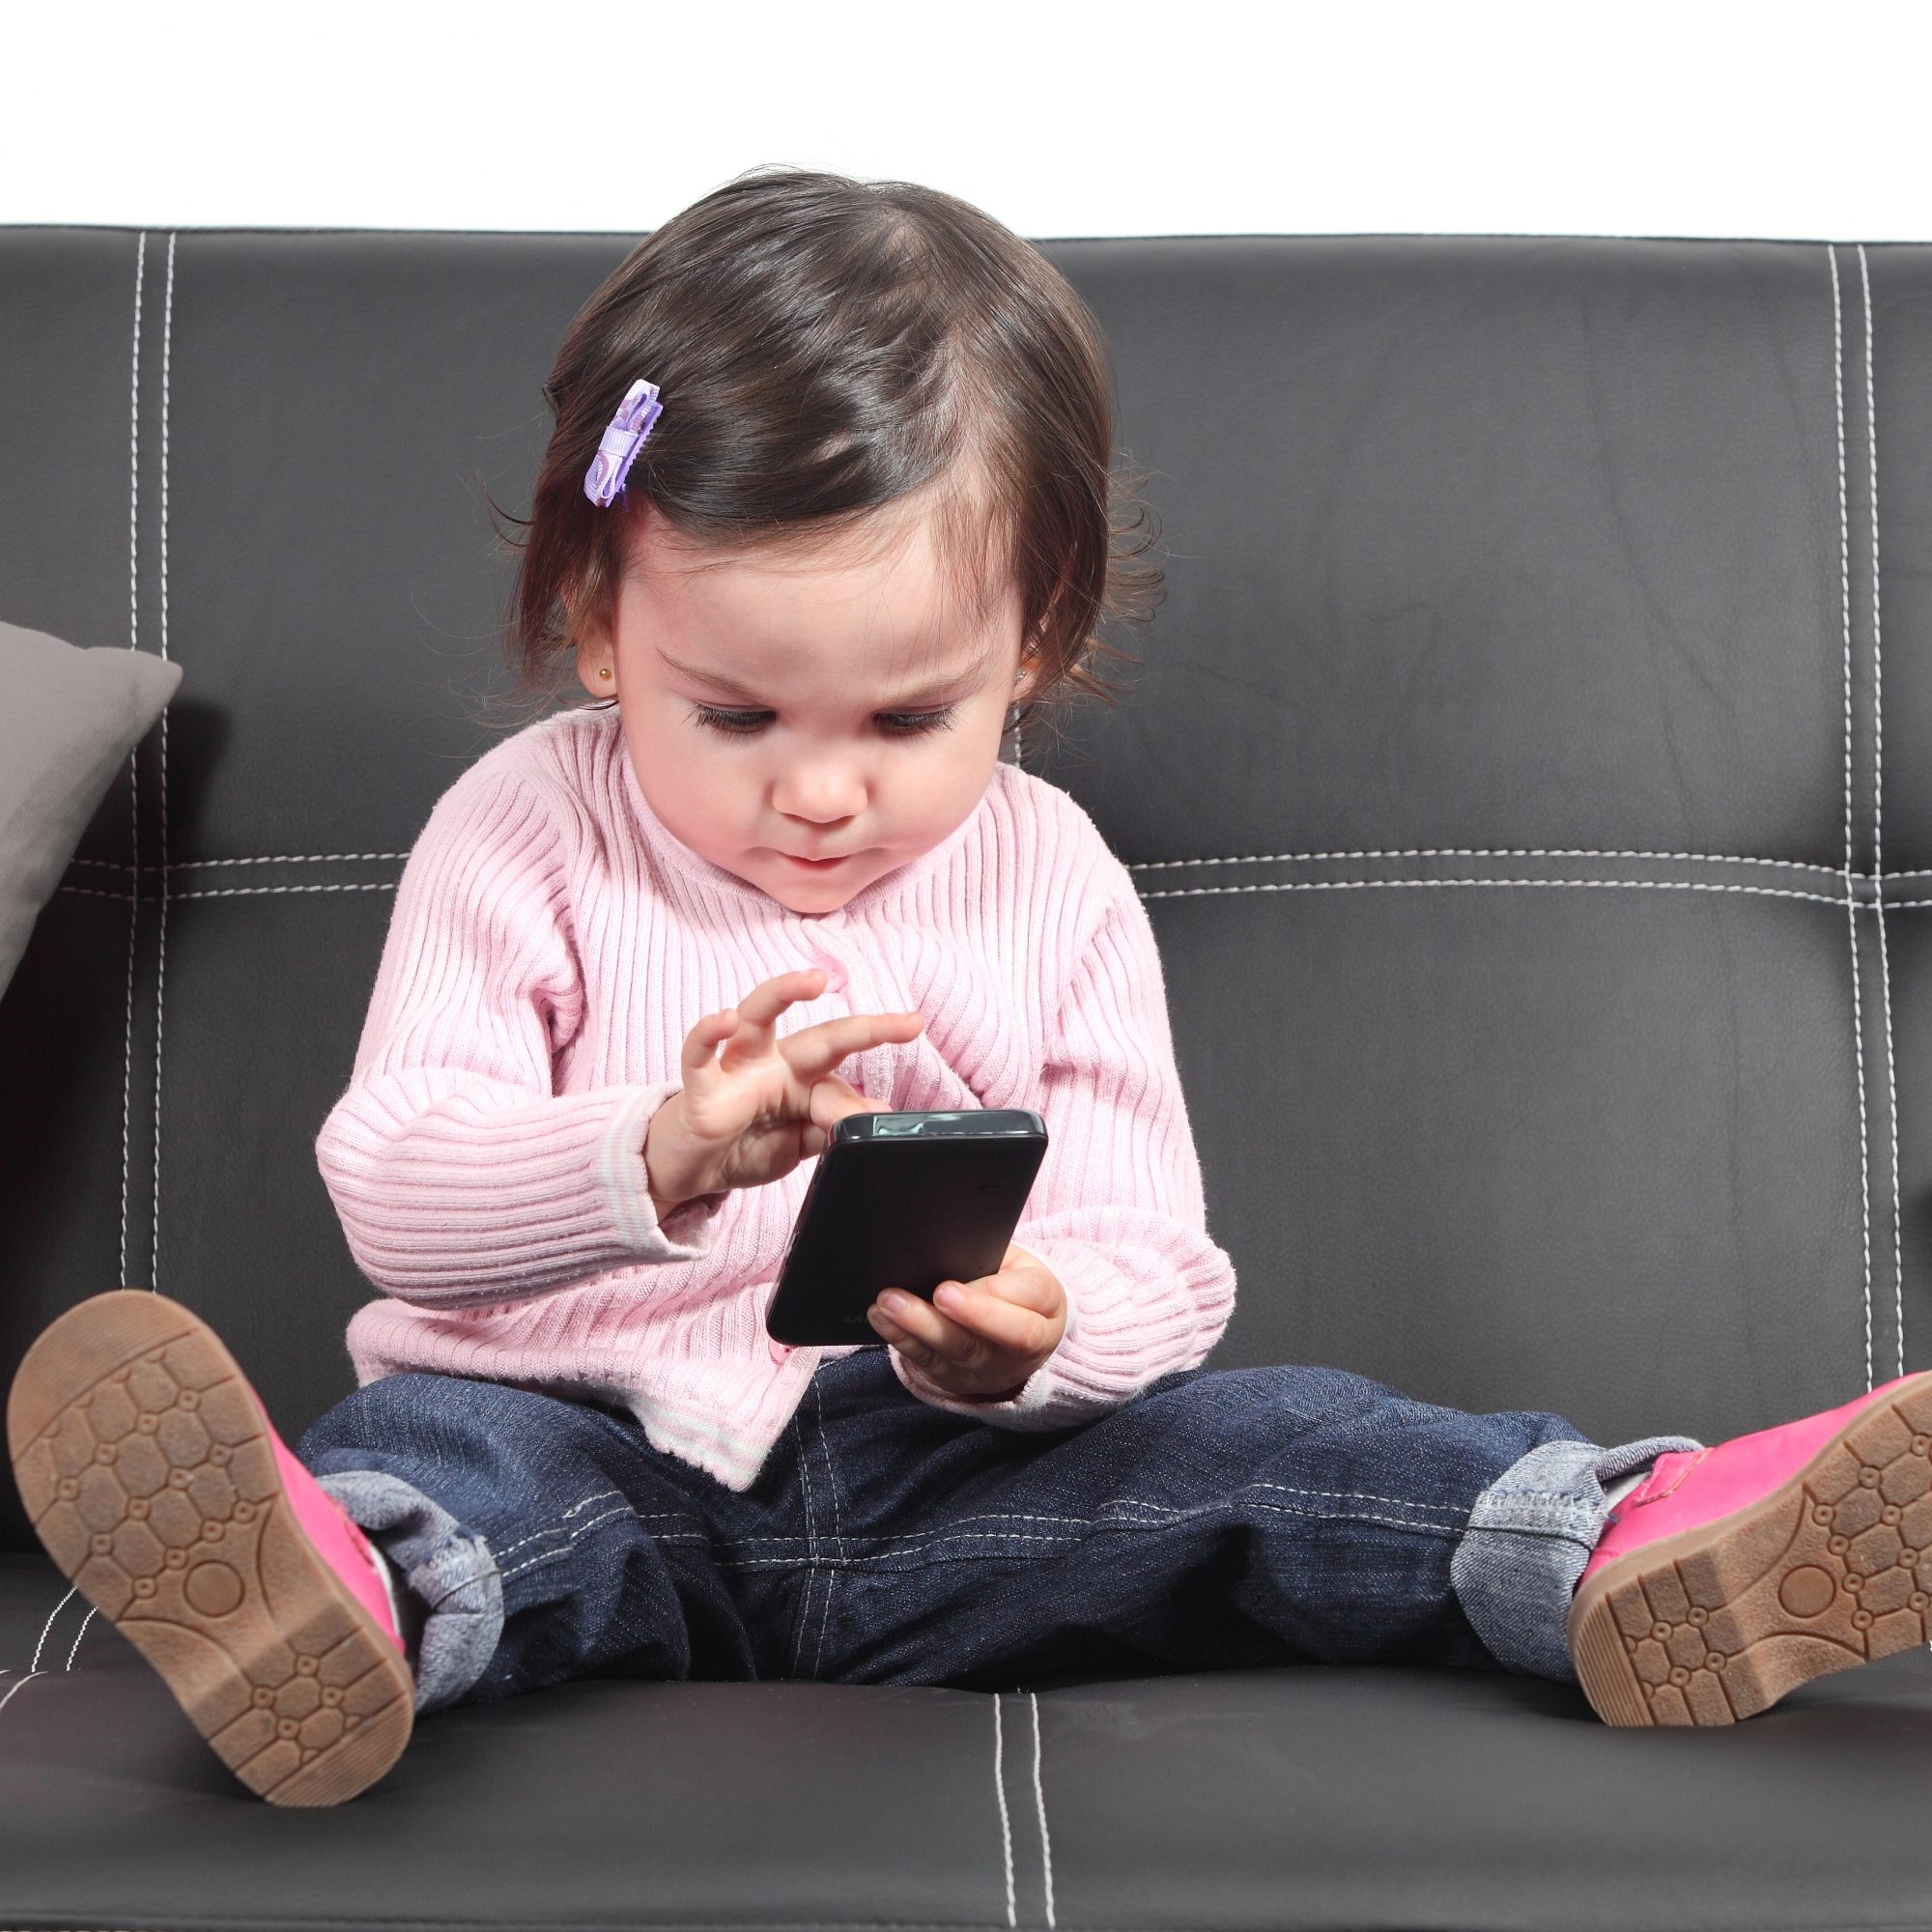 toddler looking at smartphone